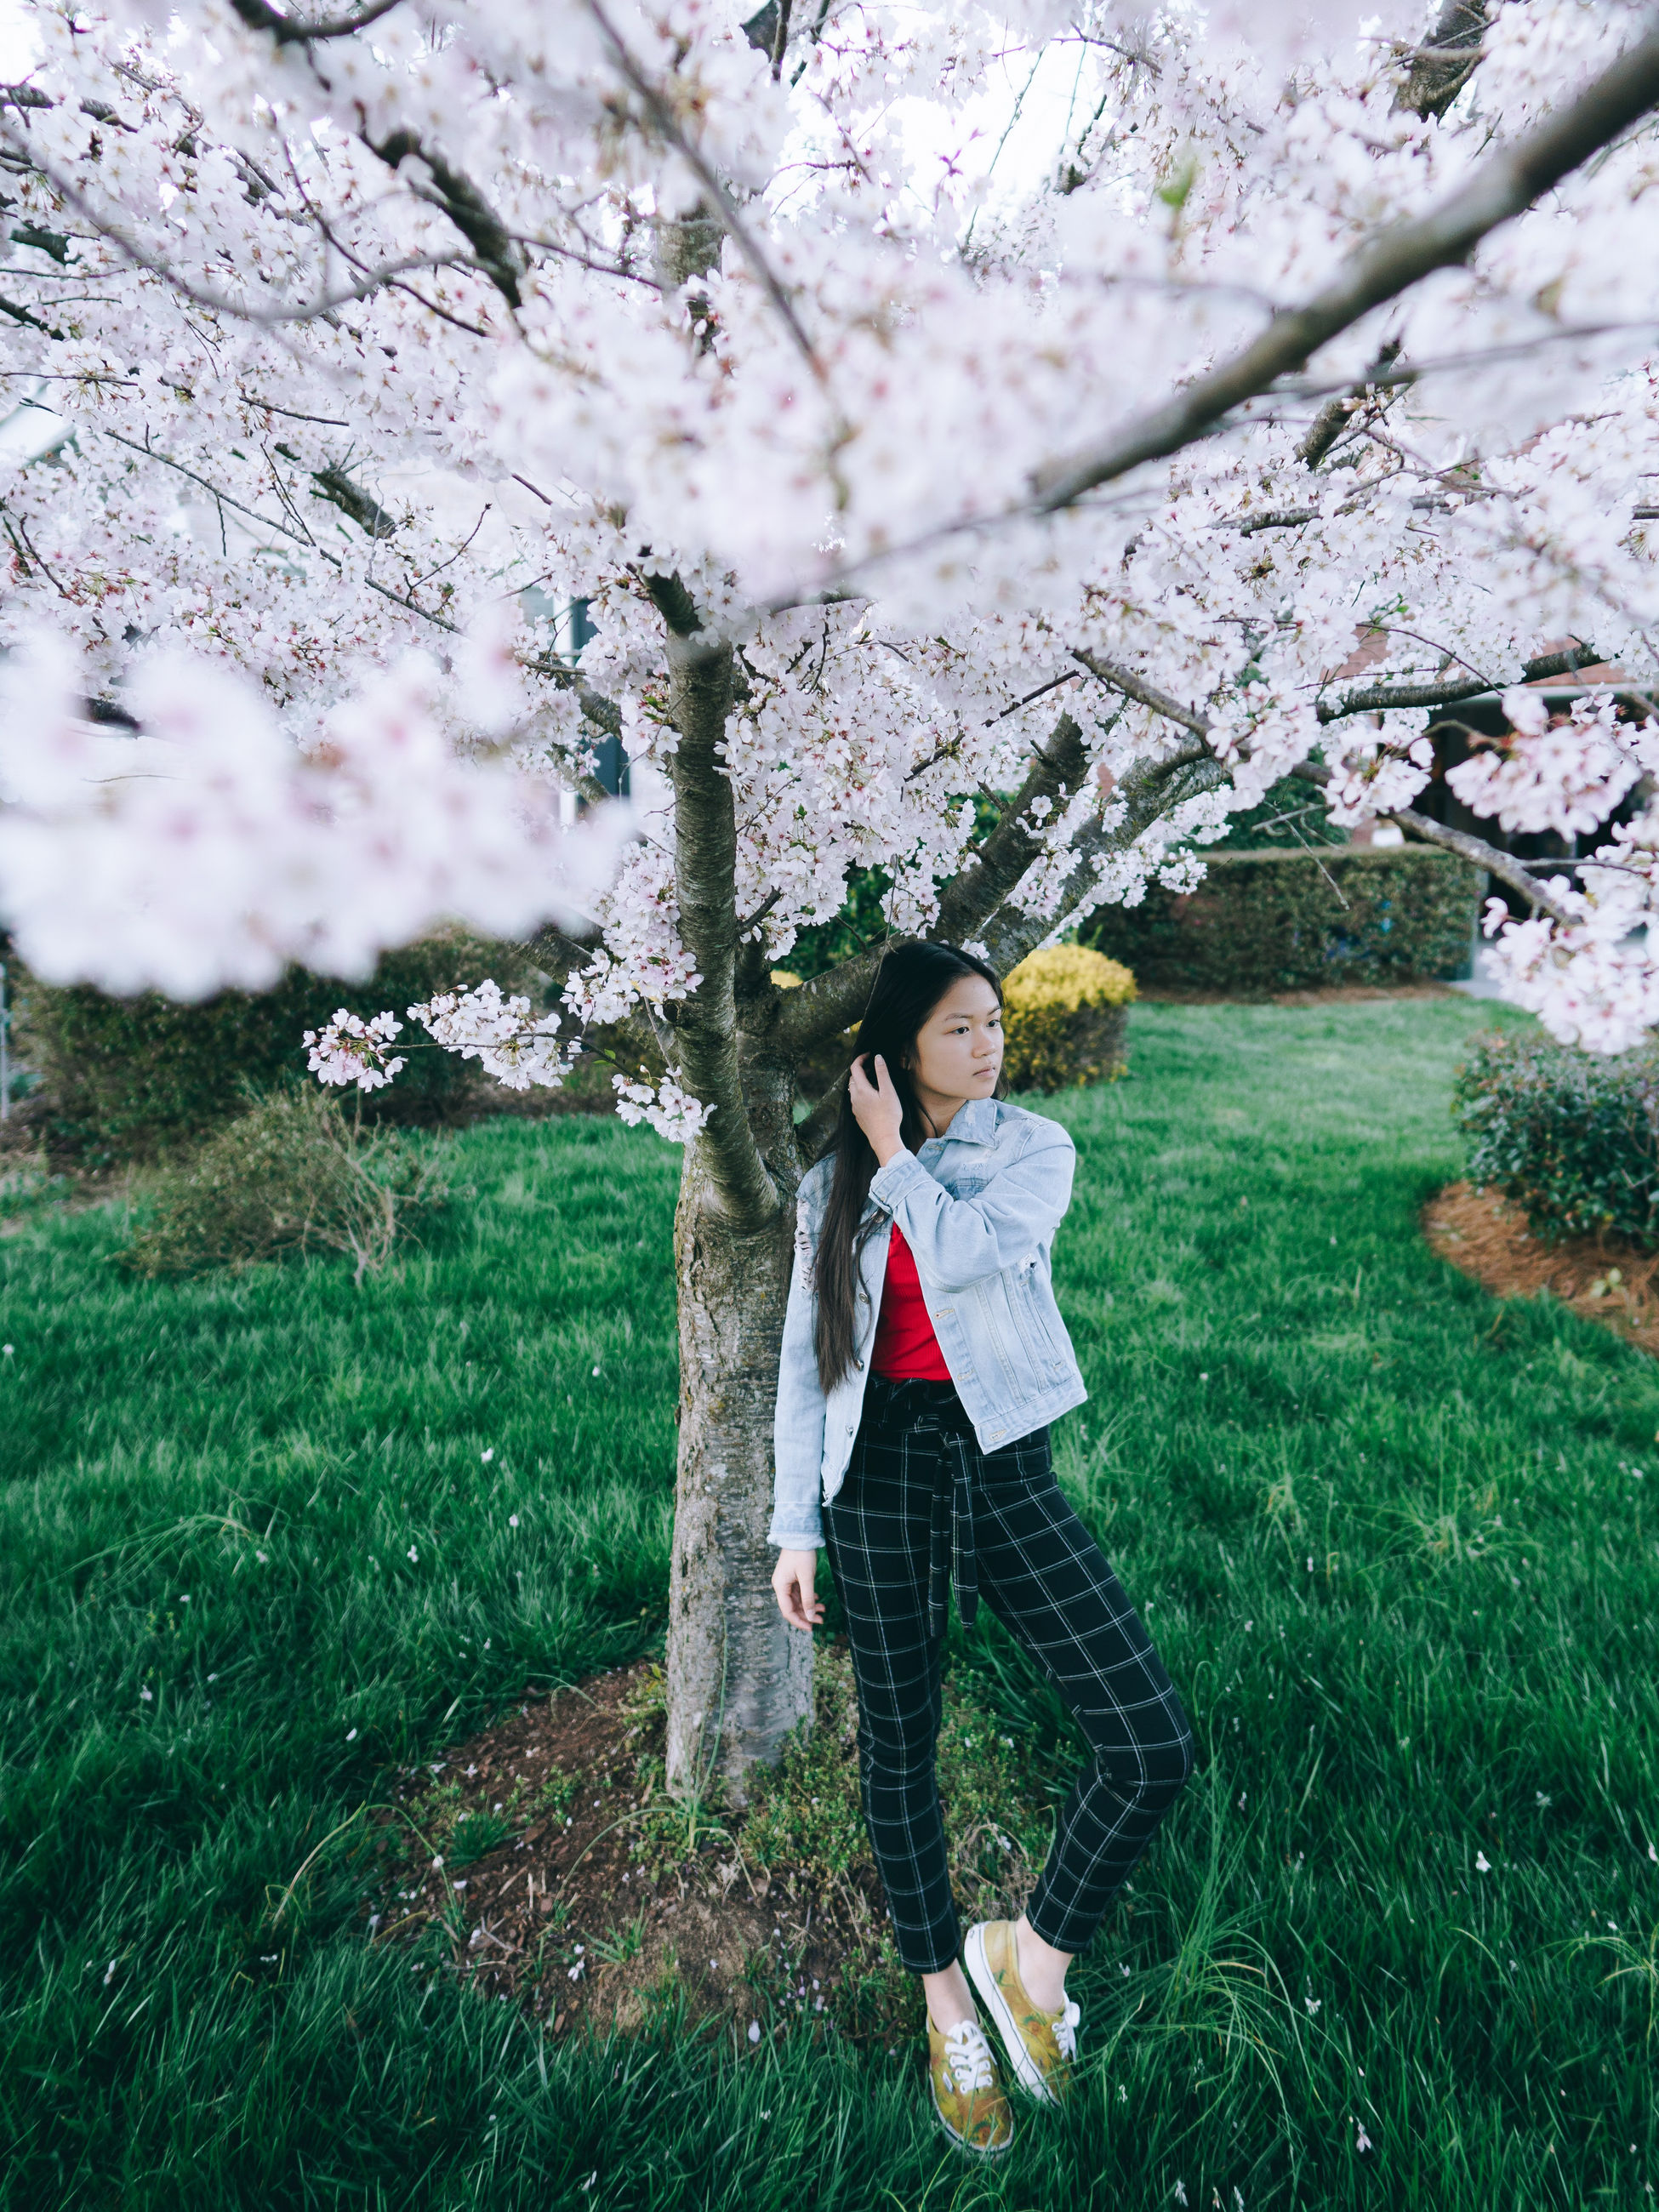 plant, tree, one person, growth, standing, real people, leisure activity, nature, casual clothing, flower, beauty in nature, lifestyles, grass, day, full length, flowering plant, young adult, land, springtime, blossom, cherry blossom, cherry tree, outdoors, hairstyle